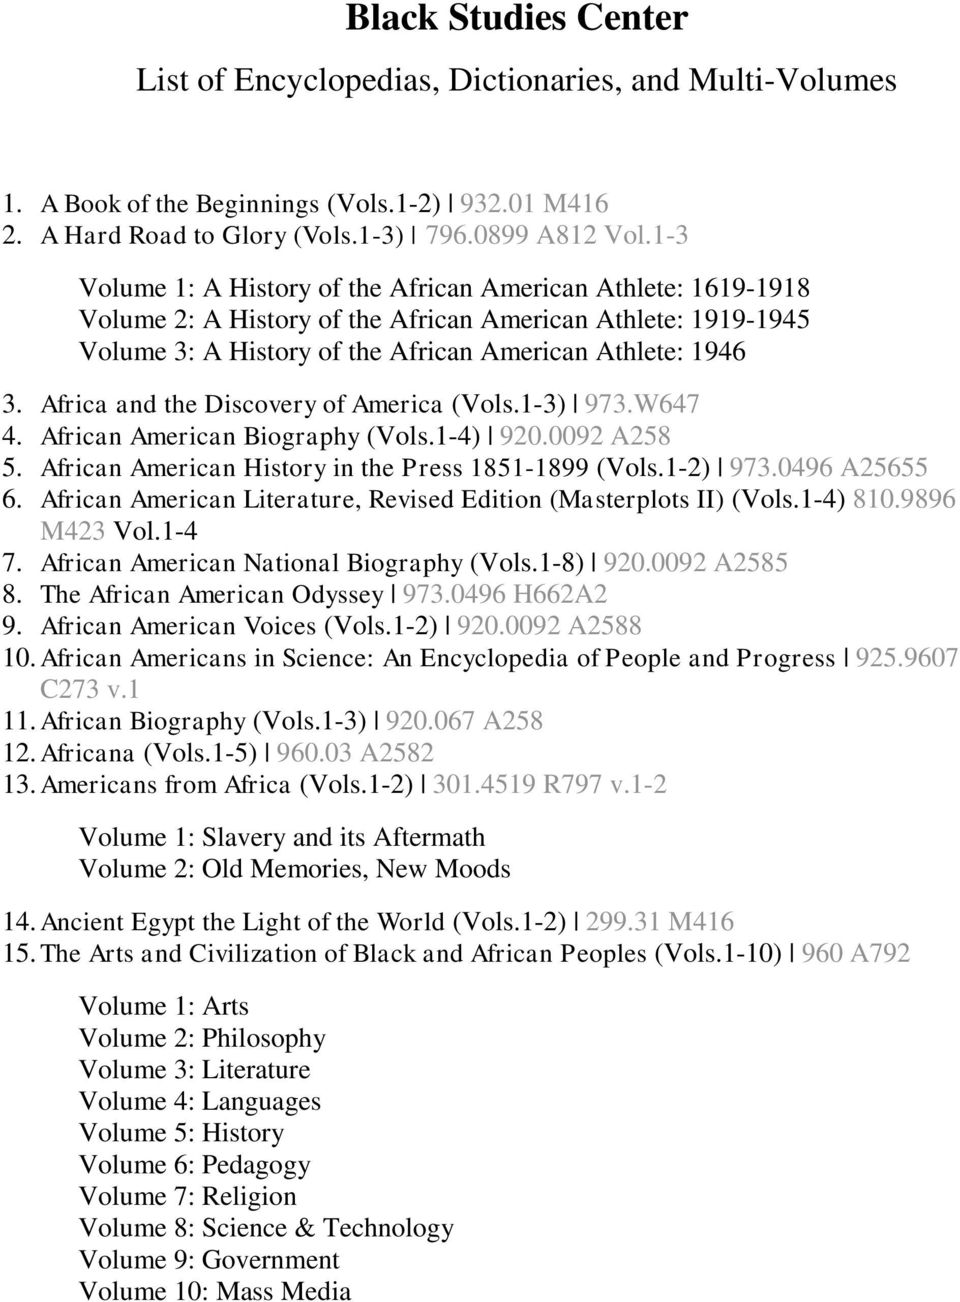 Africa and the Discovery of America (Vols.1-3) 973.W647 4. African American Biography (Vols.1-4) 920.0092 A258 5. African American History in the Press 1851-1899 (Vols.1-2) 973.0496 A25655 6.